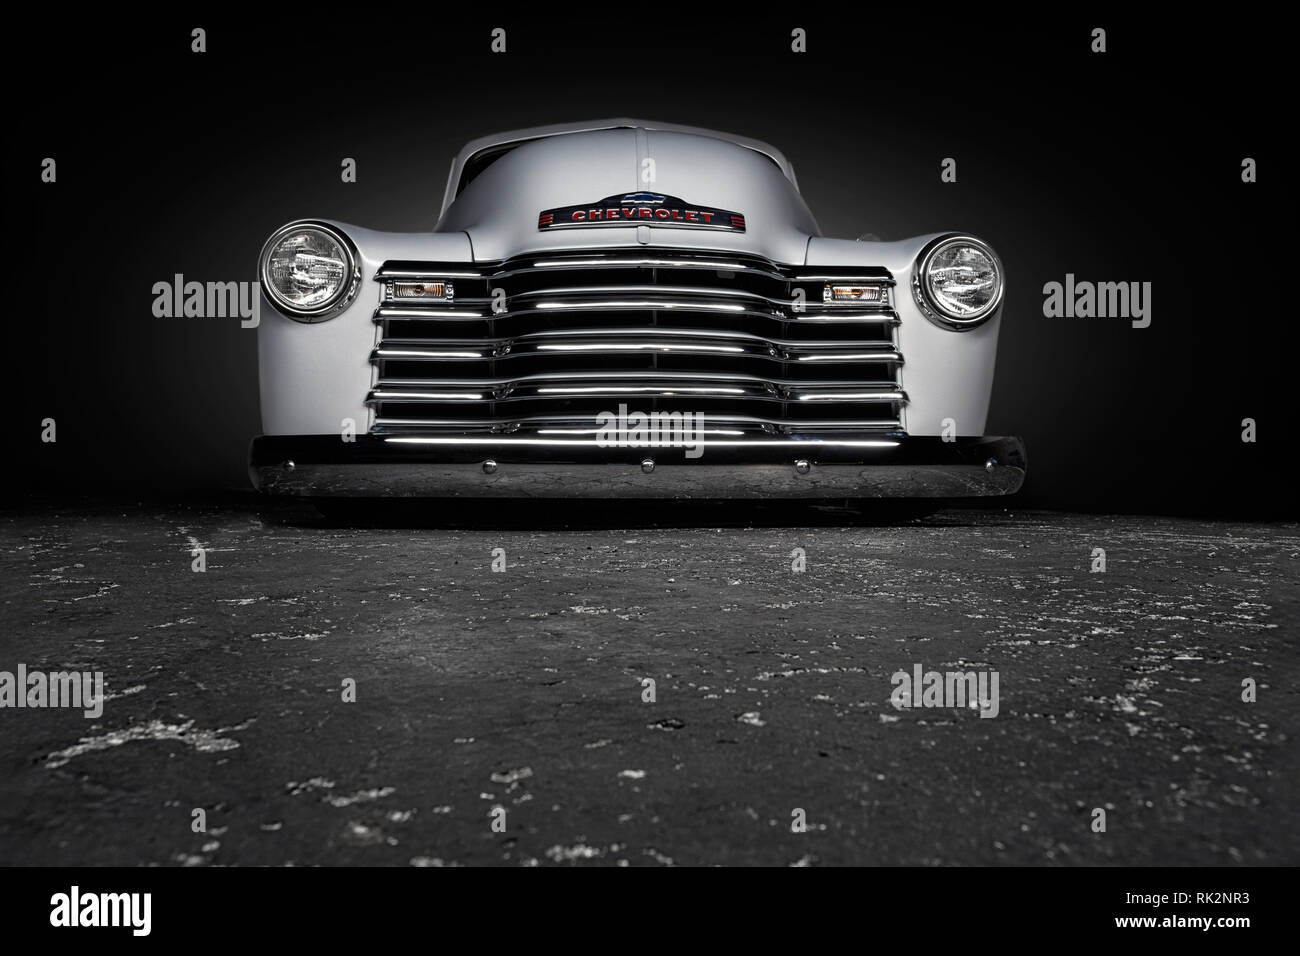 1950 Chevrolet Pickup Stock Photo